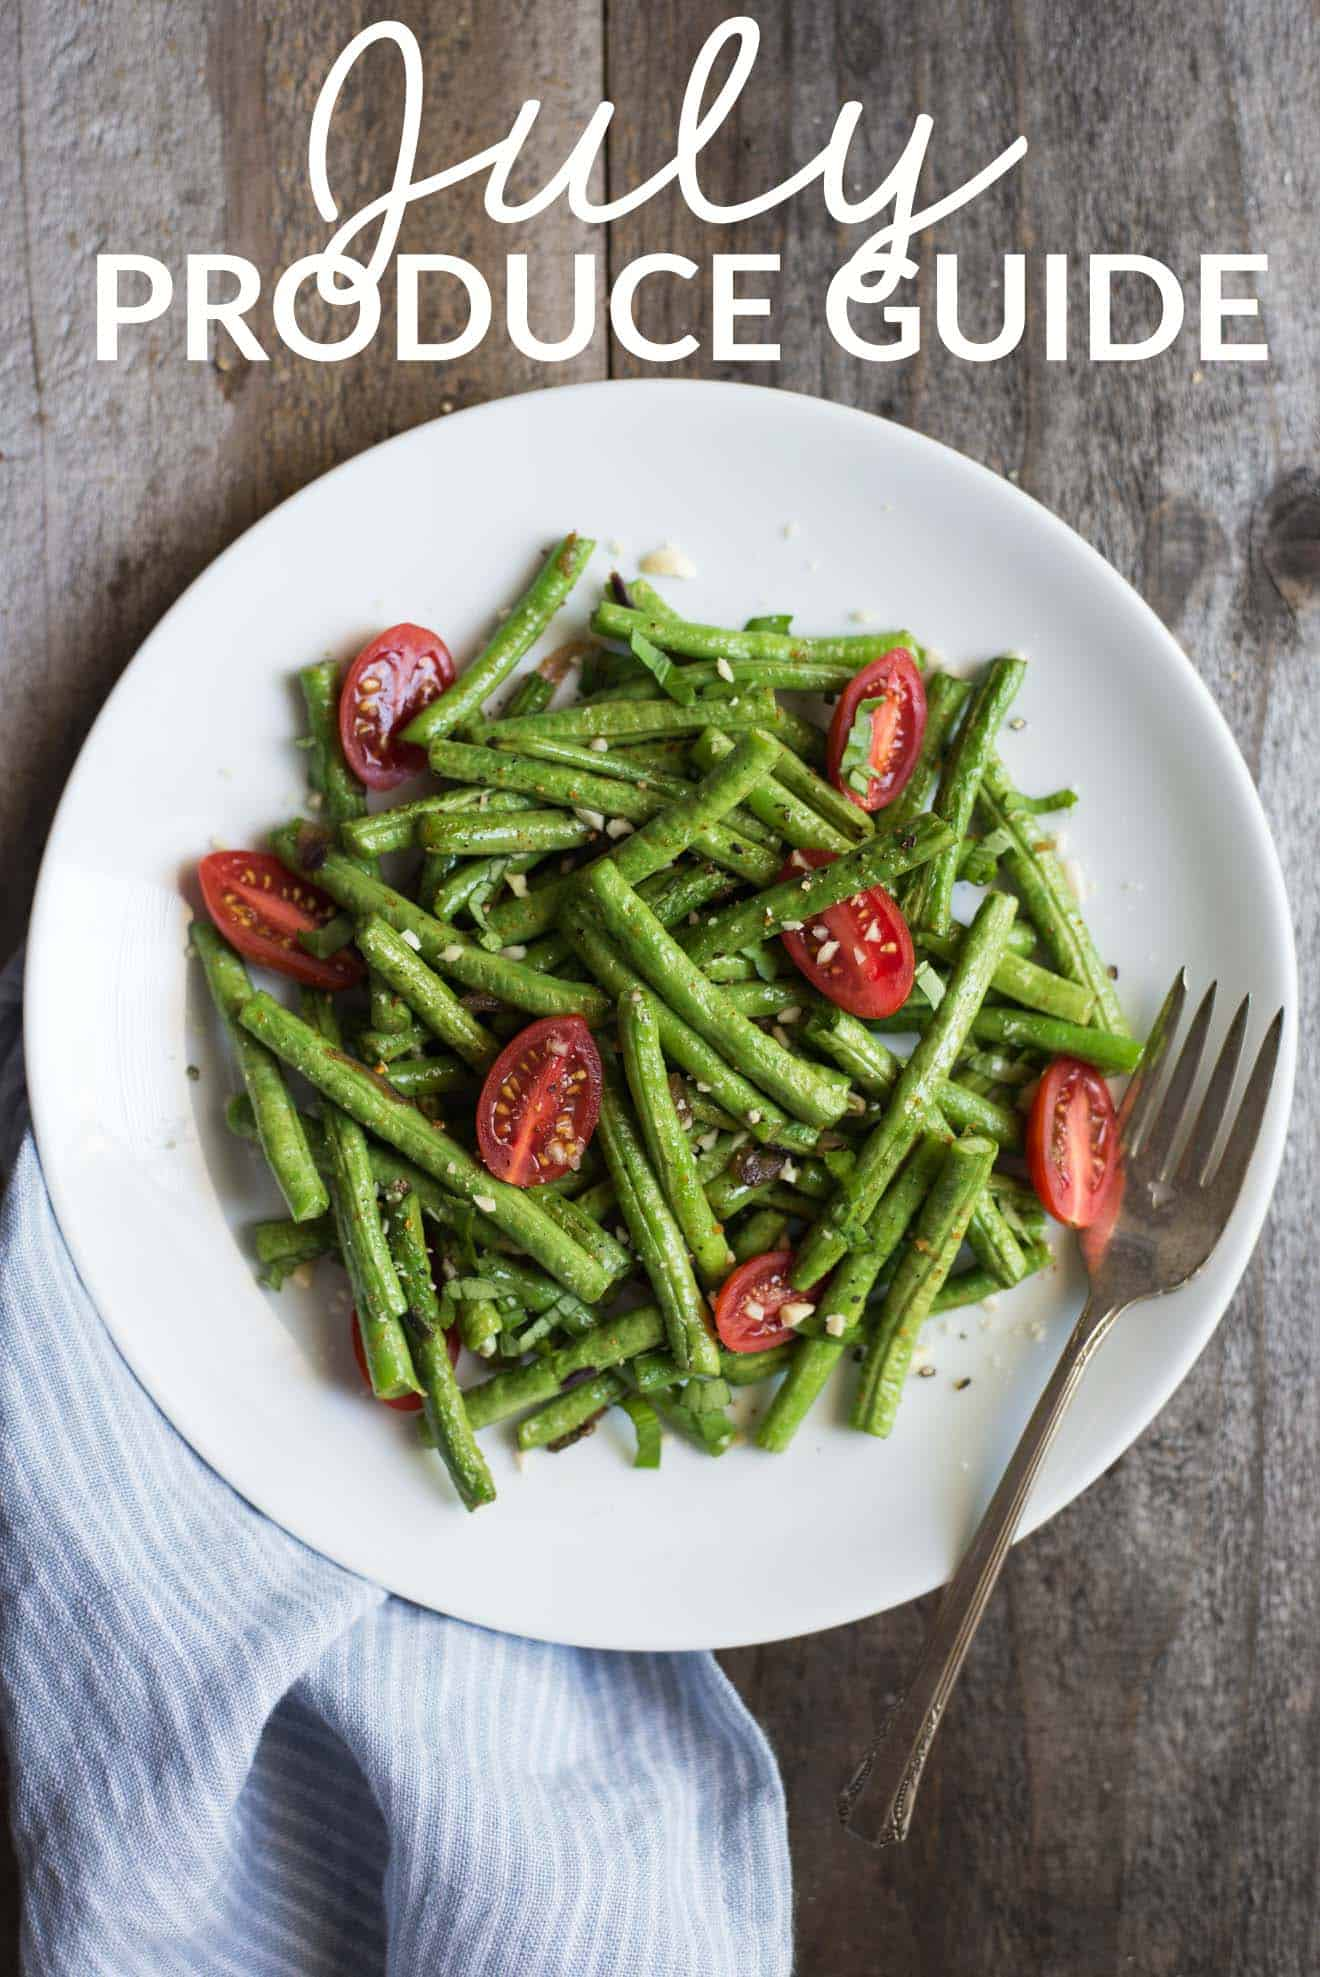 July Produce Guide - this guide features fruits and vegetables you should cook in July + recipe ideas! by @healthynibs